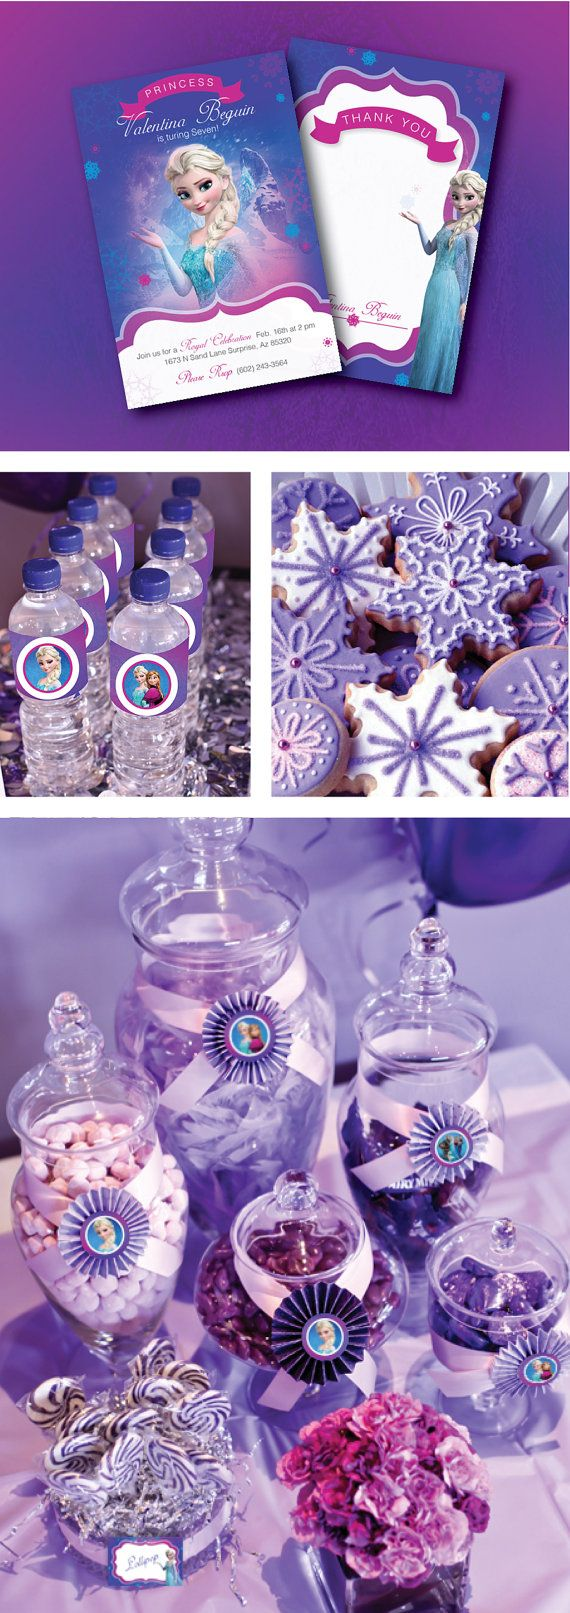 Frozen Birthday Party by GardellaGlobal. this will be the perfect theme for livi birthday party